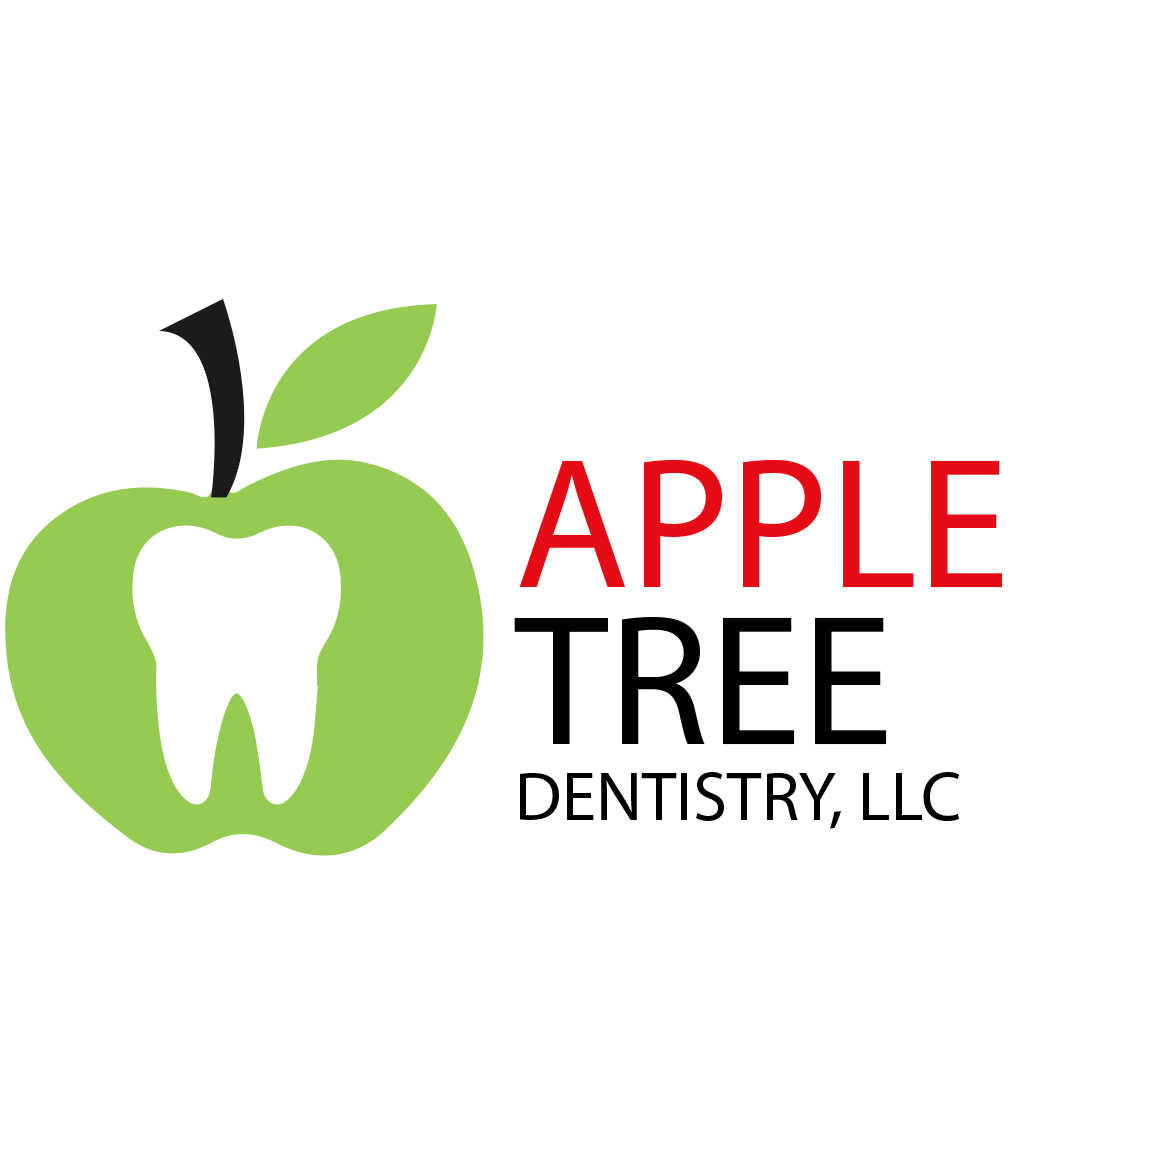 Apple Tree Dentistry, LLC